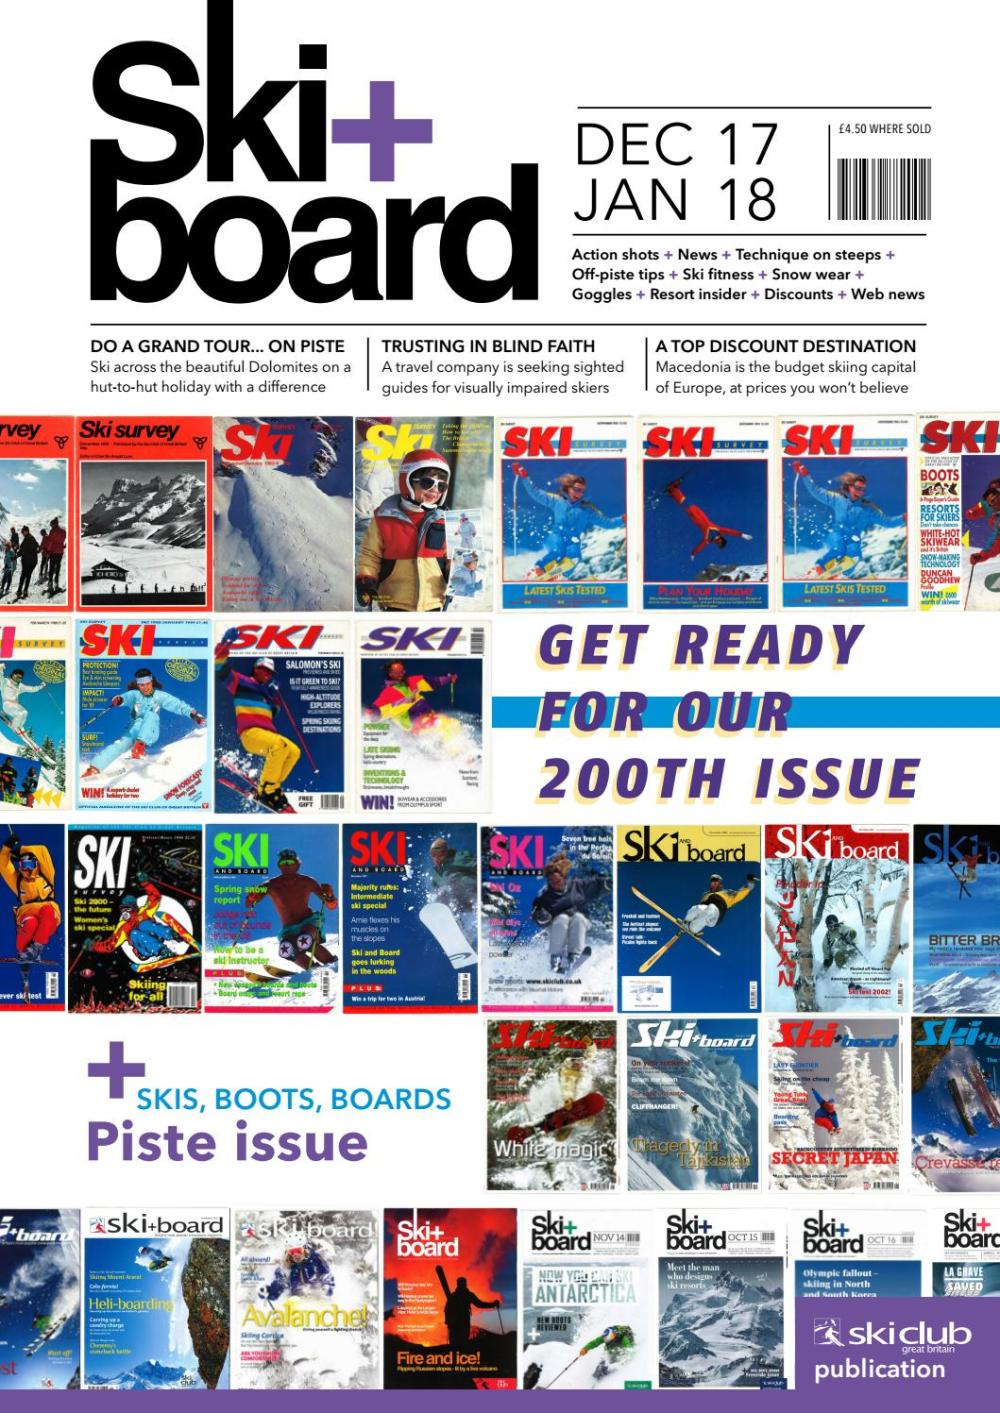 medium resolution of ski board december 2017 january 2018 by ski club of great britain issuu